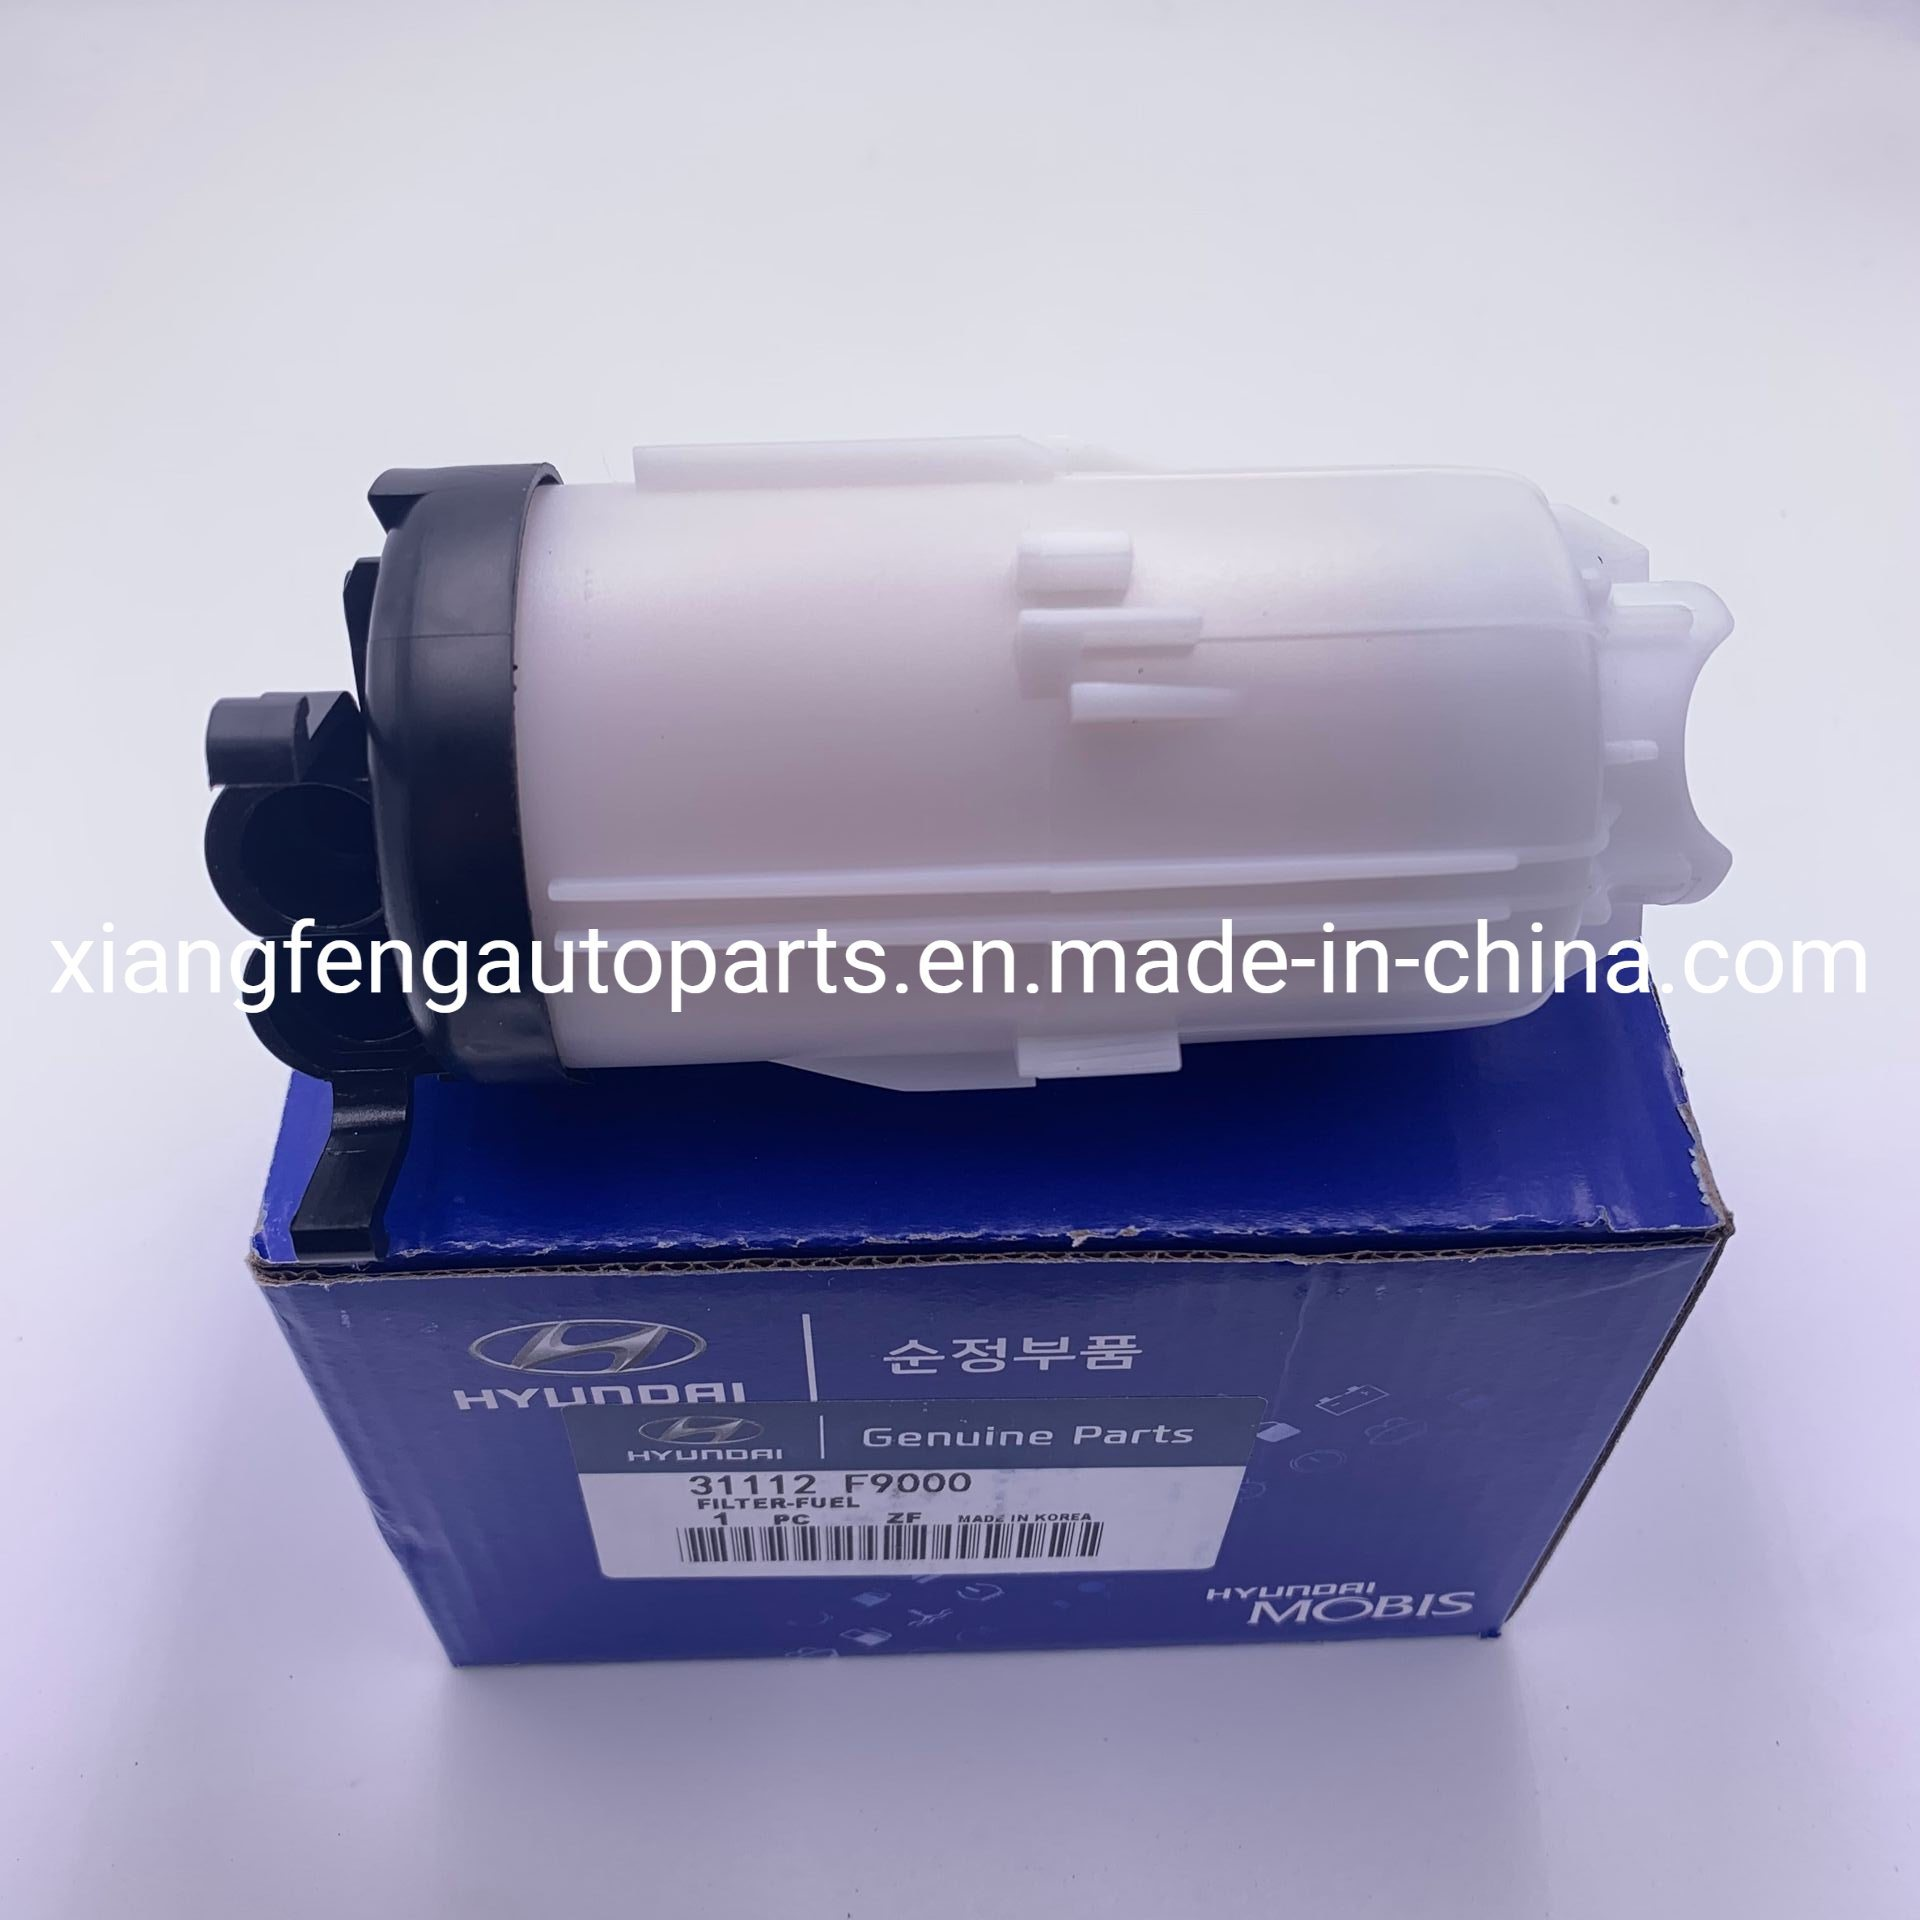 china wholesale engine fuel filter 31112-f9000 for hyundai elantra - china fuel  filter, engine fuel filter  guangzhou xiangfeng auto parts company